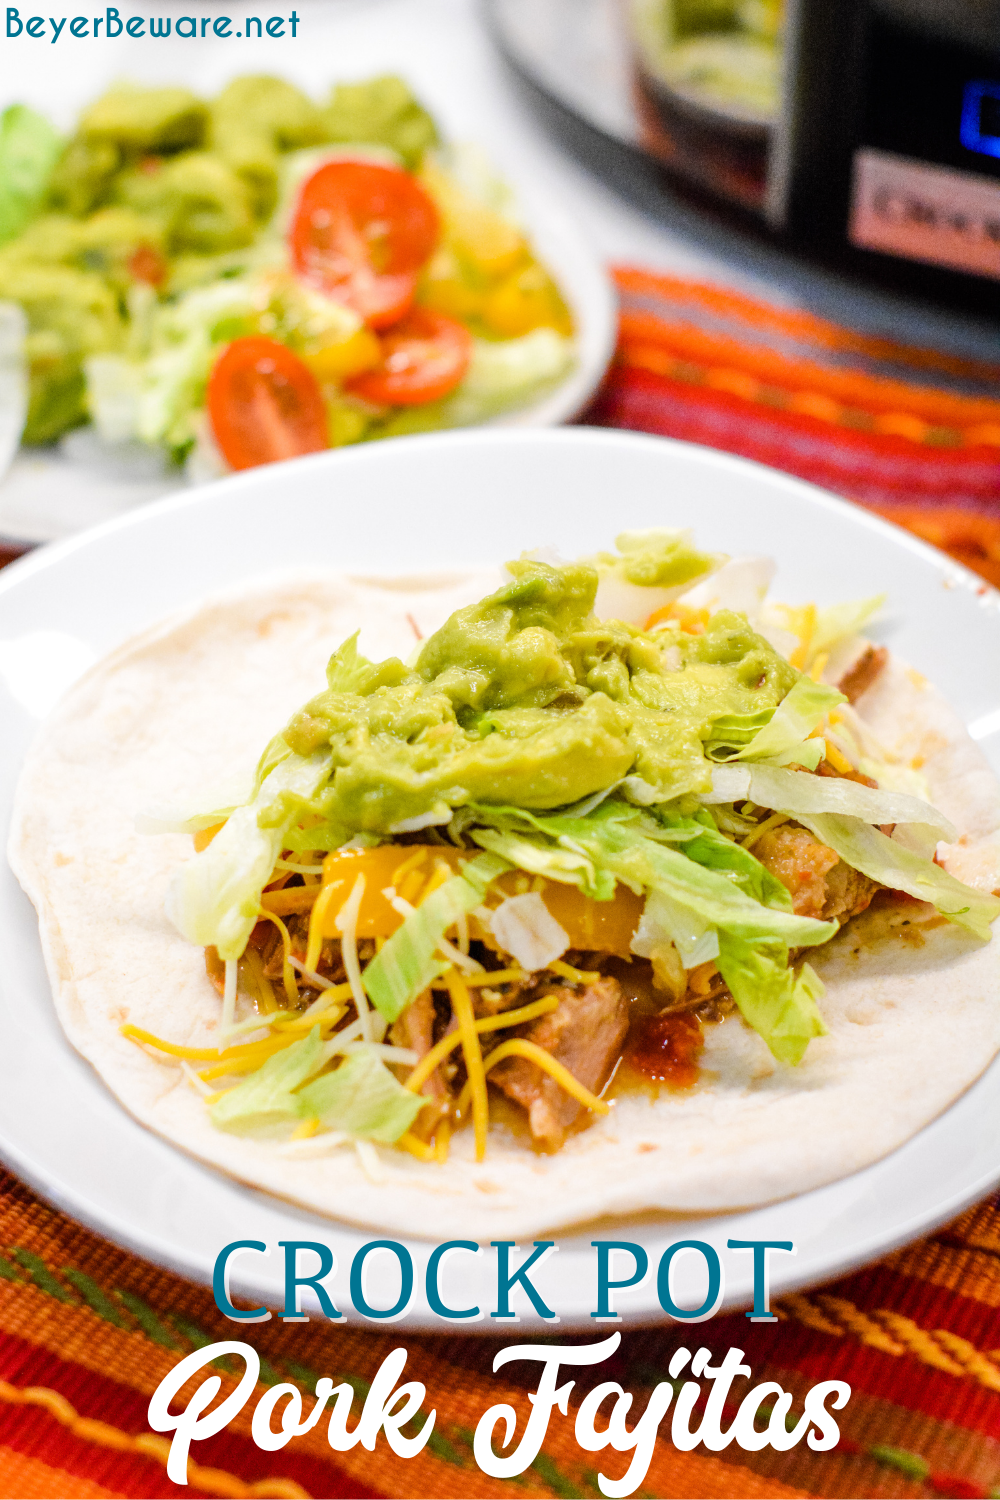 Crock Pot Pork Fajitas recipe is easy to make in a slow cooker along with a pork loin roast, can of Rotel, fajita seasonings, onions and peppers slow cooked all day for an easy weeknight dinner or Taco Tuesday.